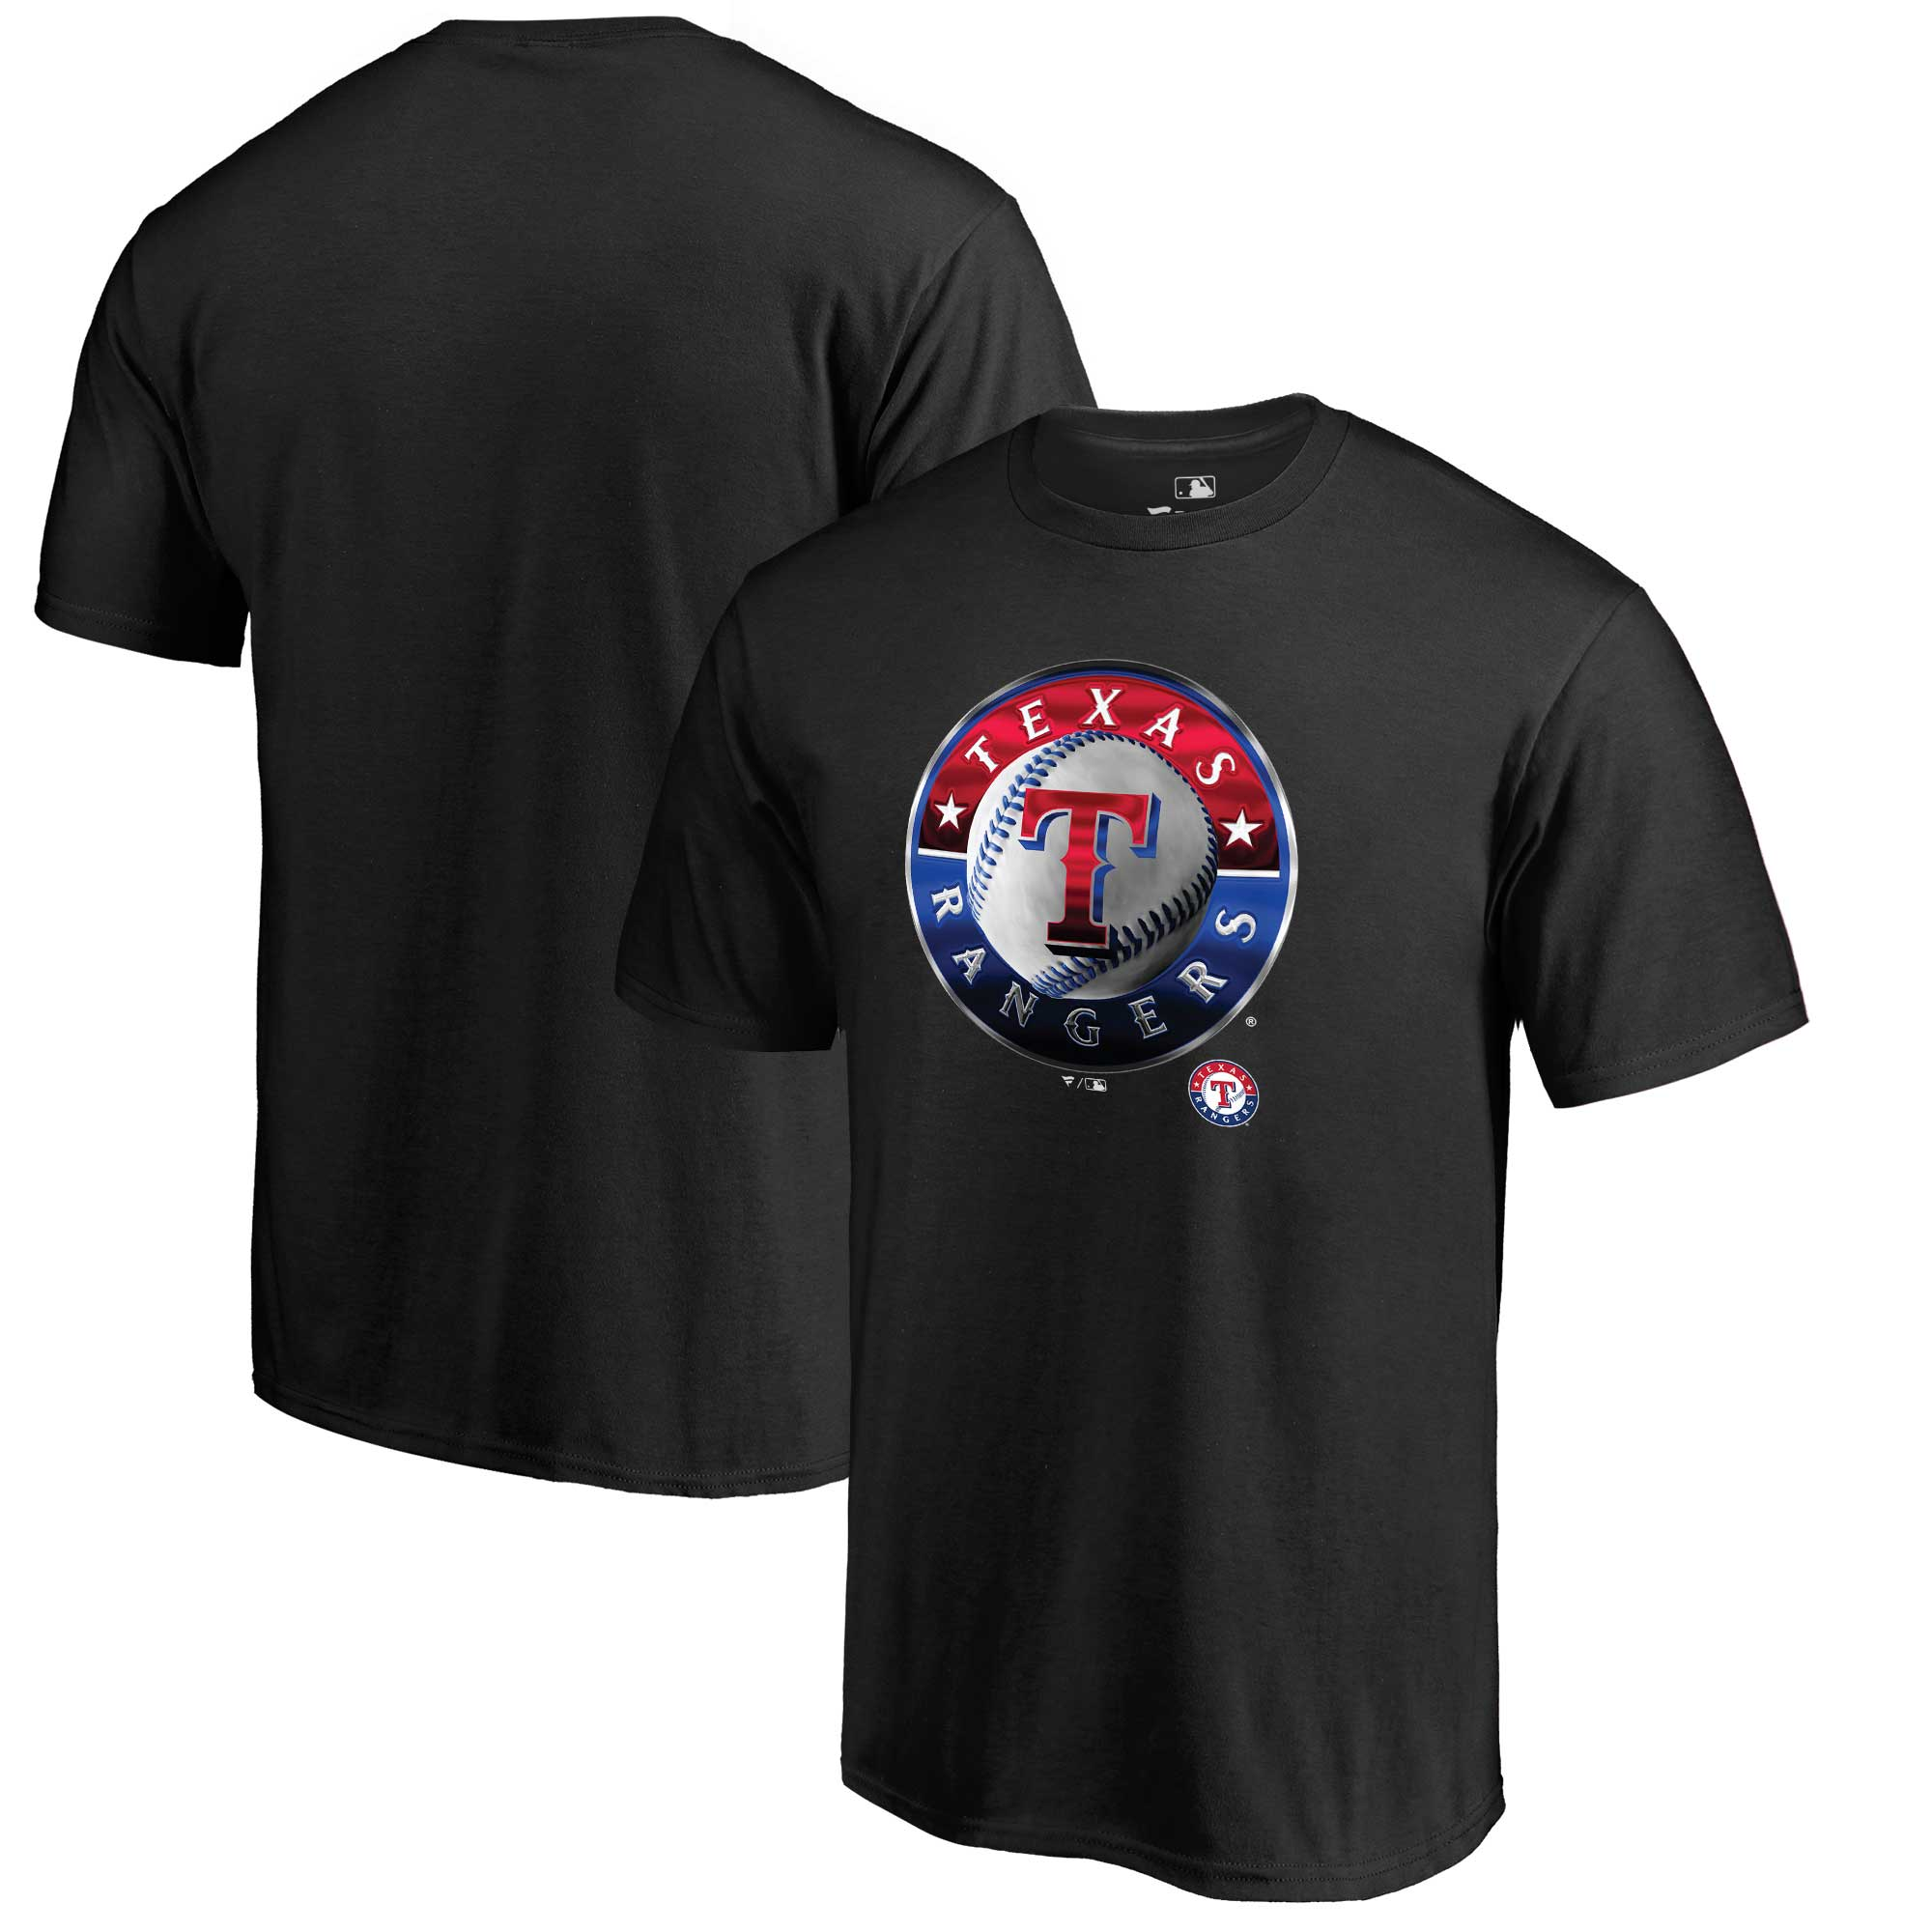 Texas Rangers Fanatics Branded Midnight Mascot T-Shirt - Black